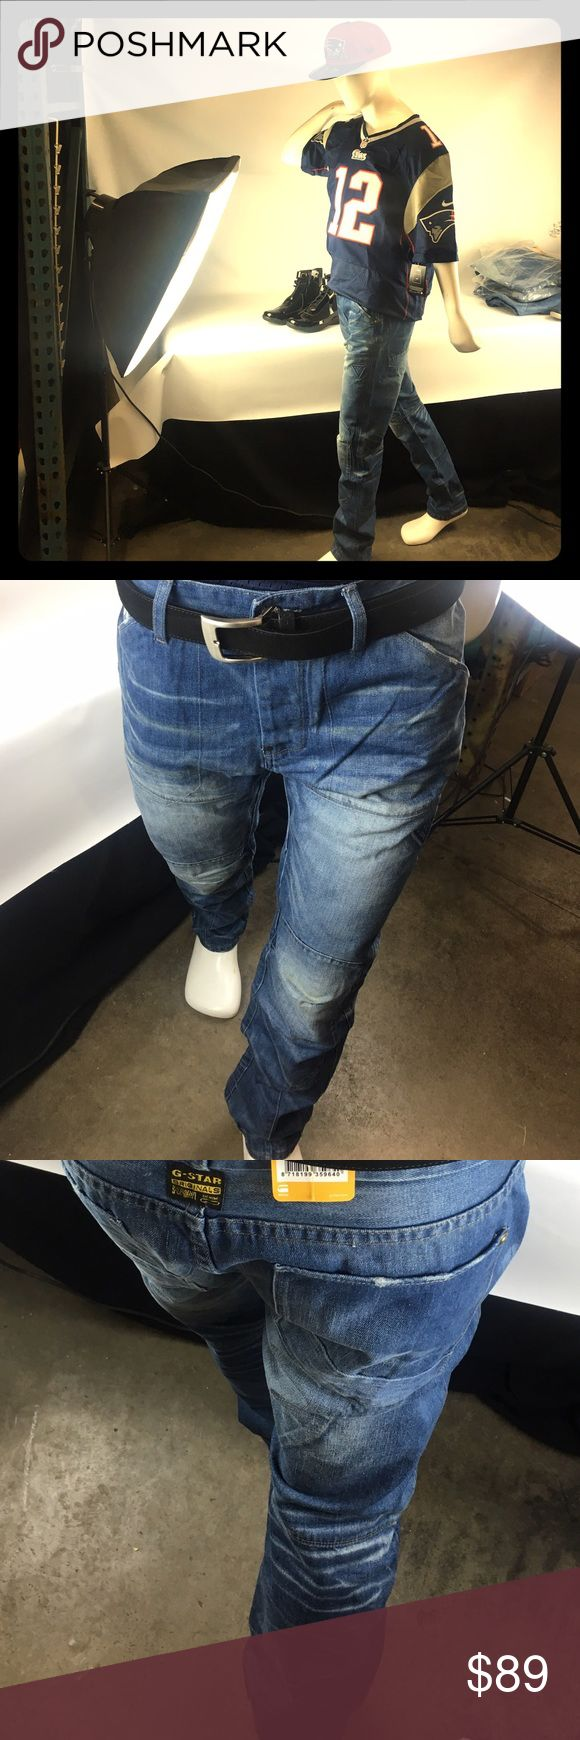 """NWT MENS w x 33"""", L x 34"""" G STAR RAW Jeans/5620 NWT. Mens  w x 33"""", L x 34"""", G STAR RAW, Graft, Tapered Leg , Nitro Denim, Button Fly Jeans. The color is called """" Sun Bleached """" style 5620 G STAR Jeans Slim"""